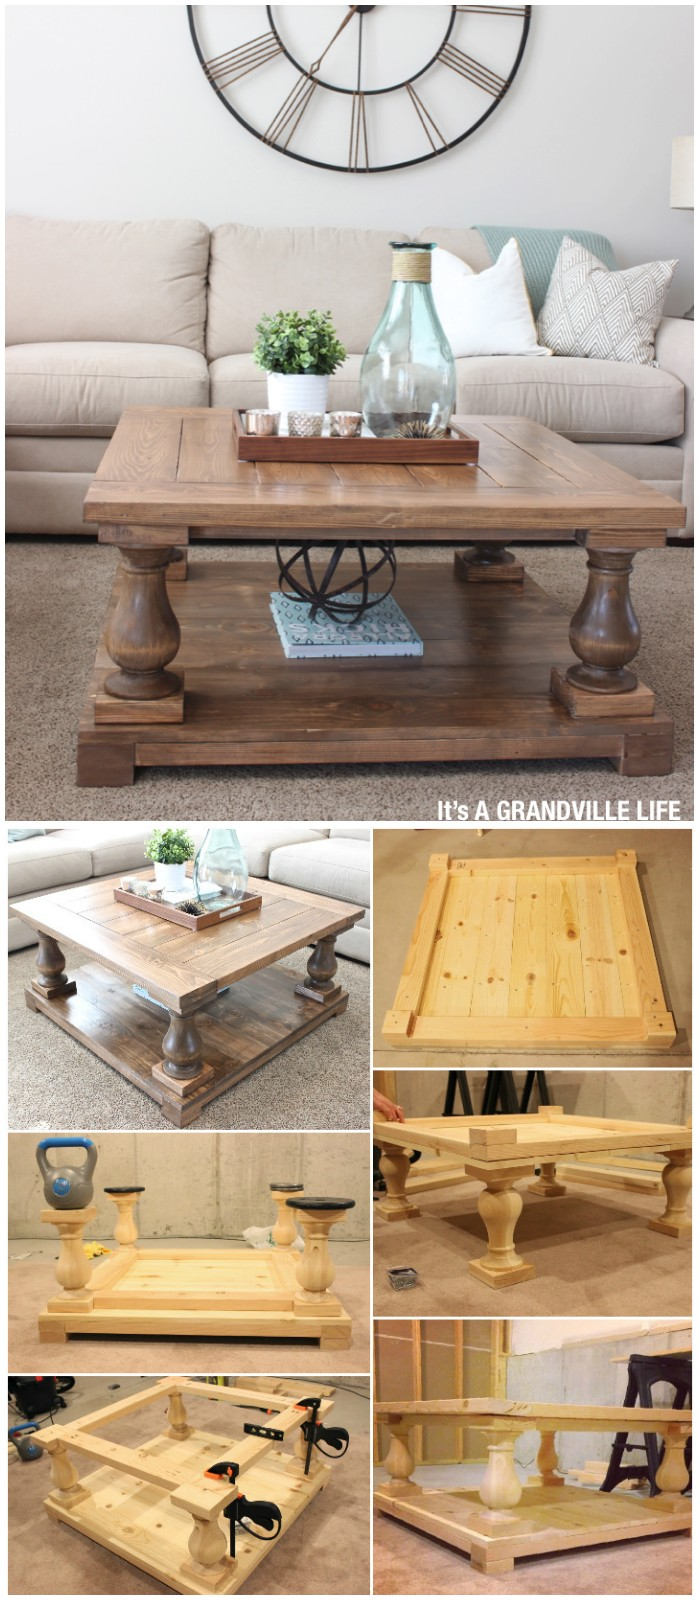 Balustrade DIY Coffee Table - Free Plans to Build a DIY Coffee Tables